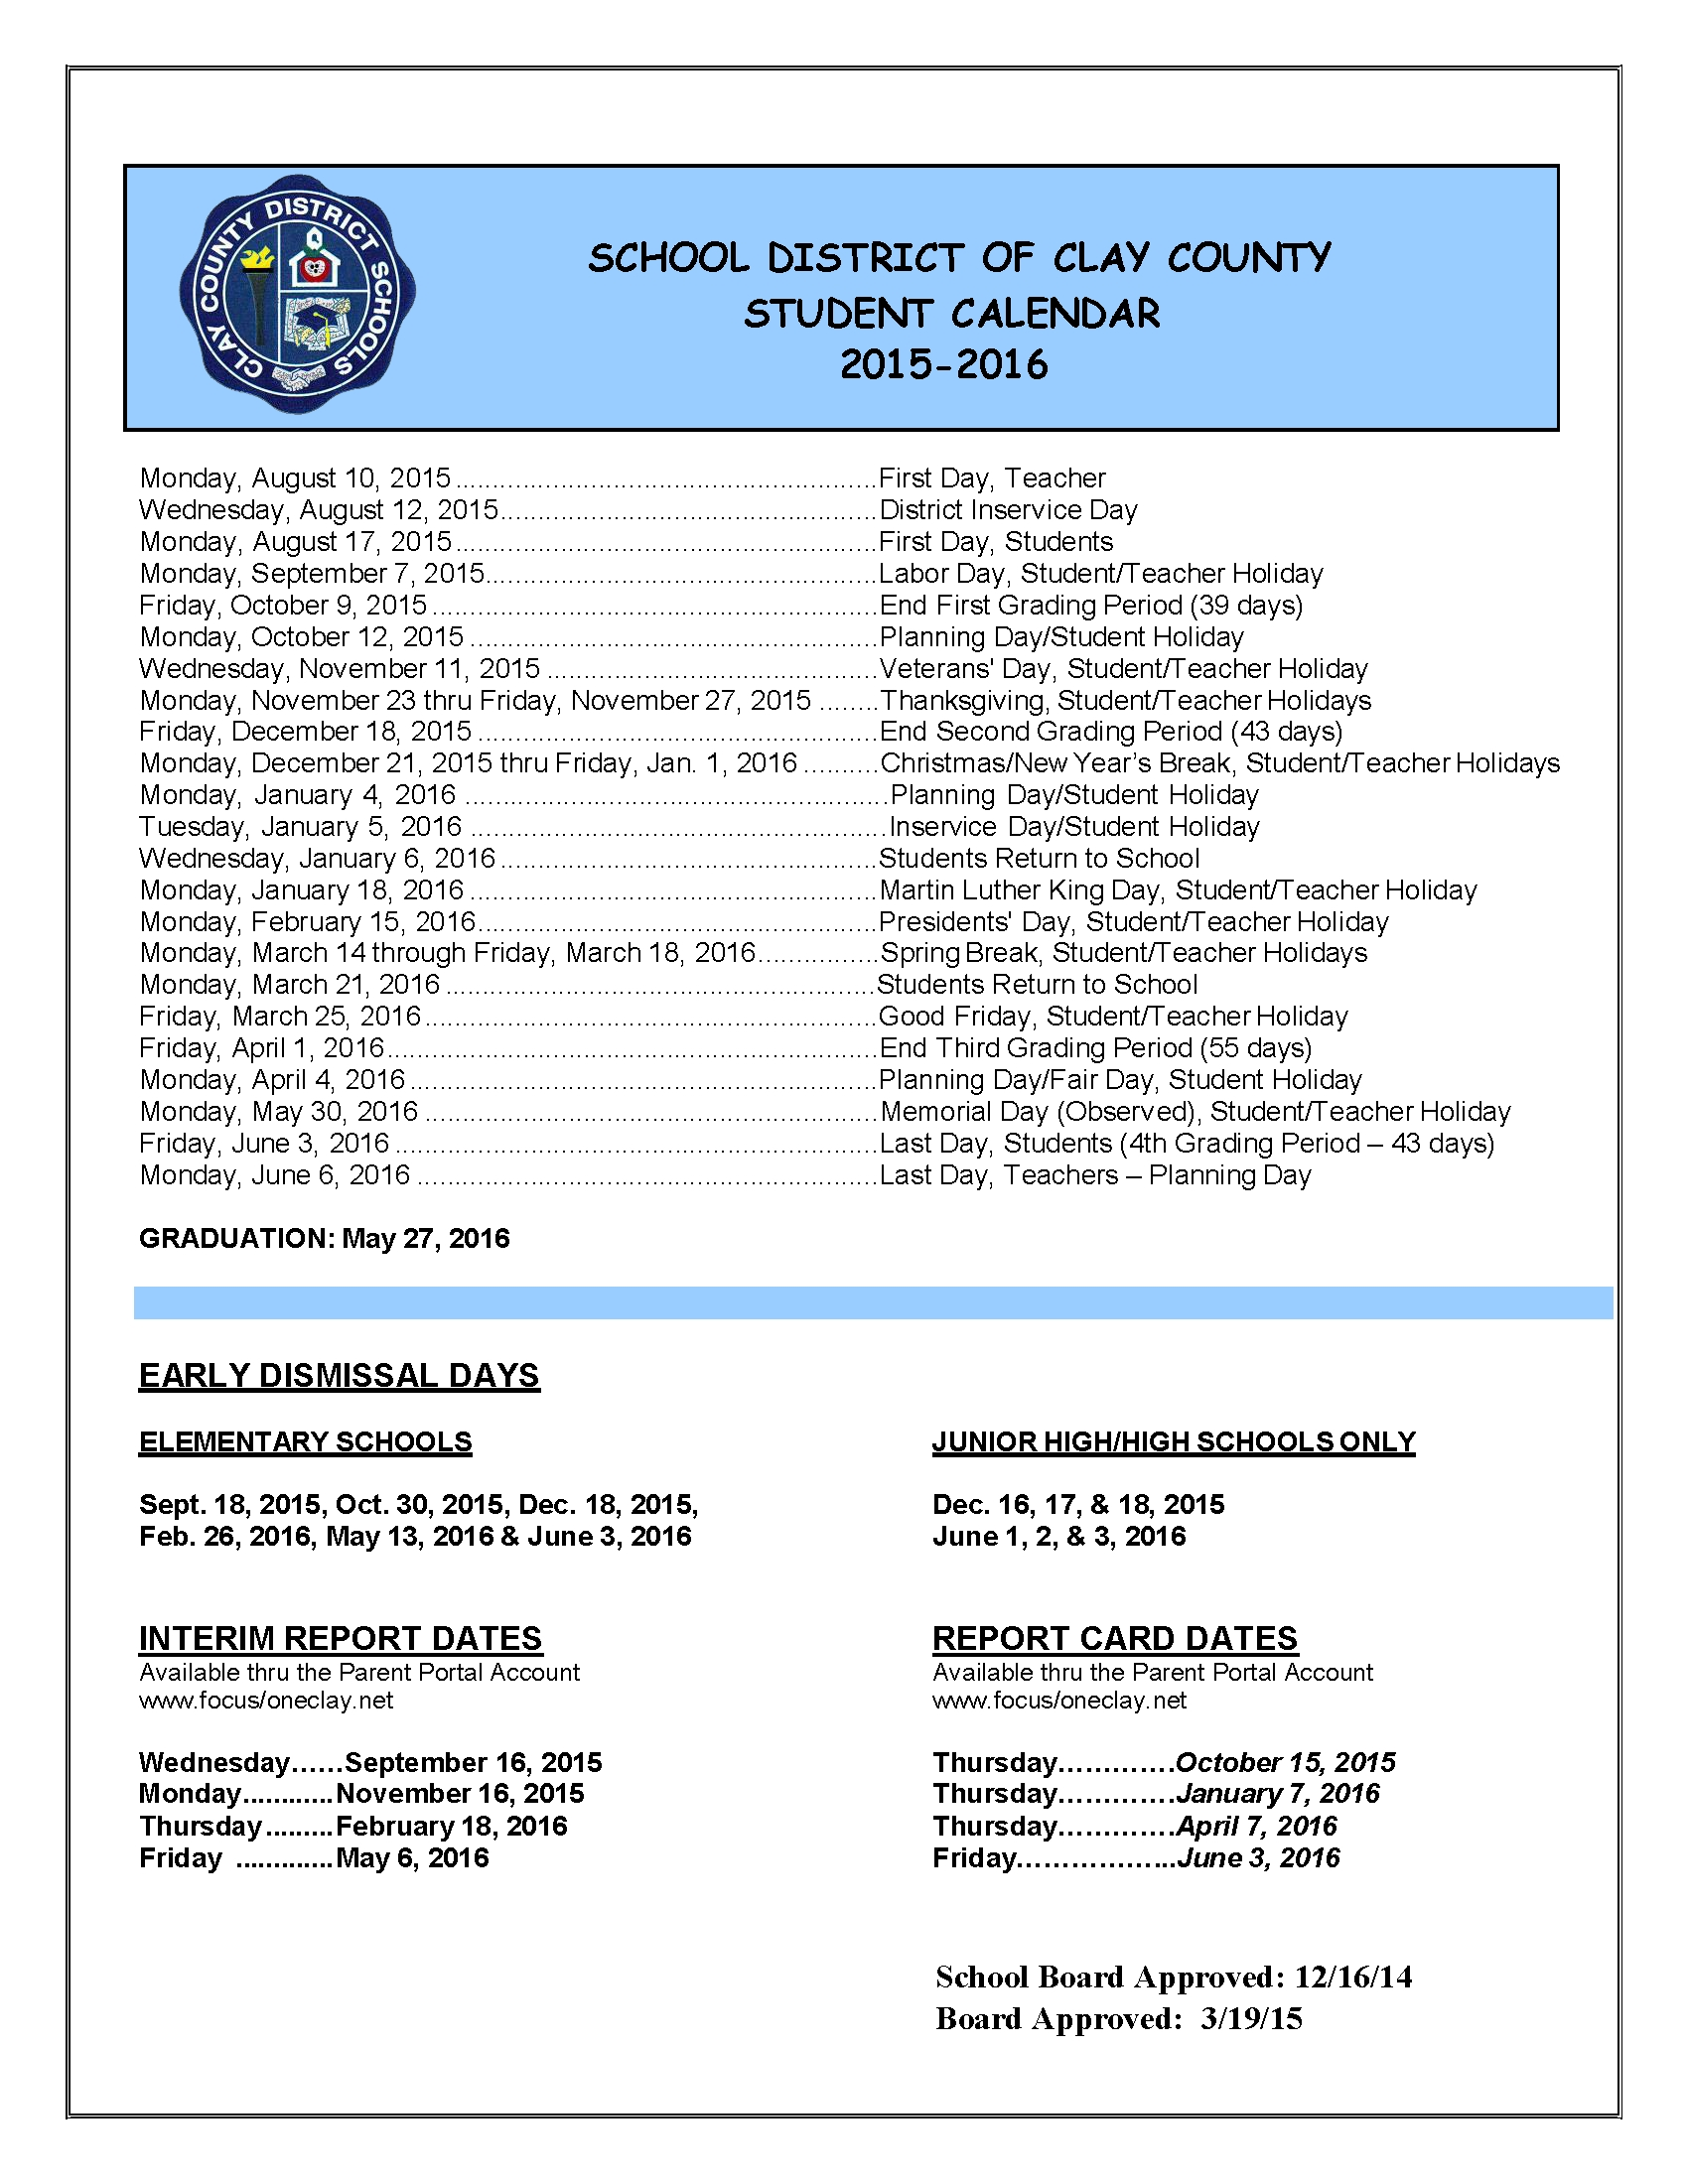 Contact Me - Welcome To Language Arts_School Calendar Clay County